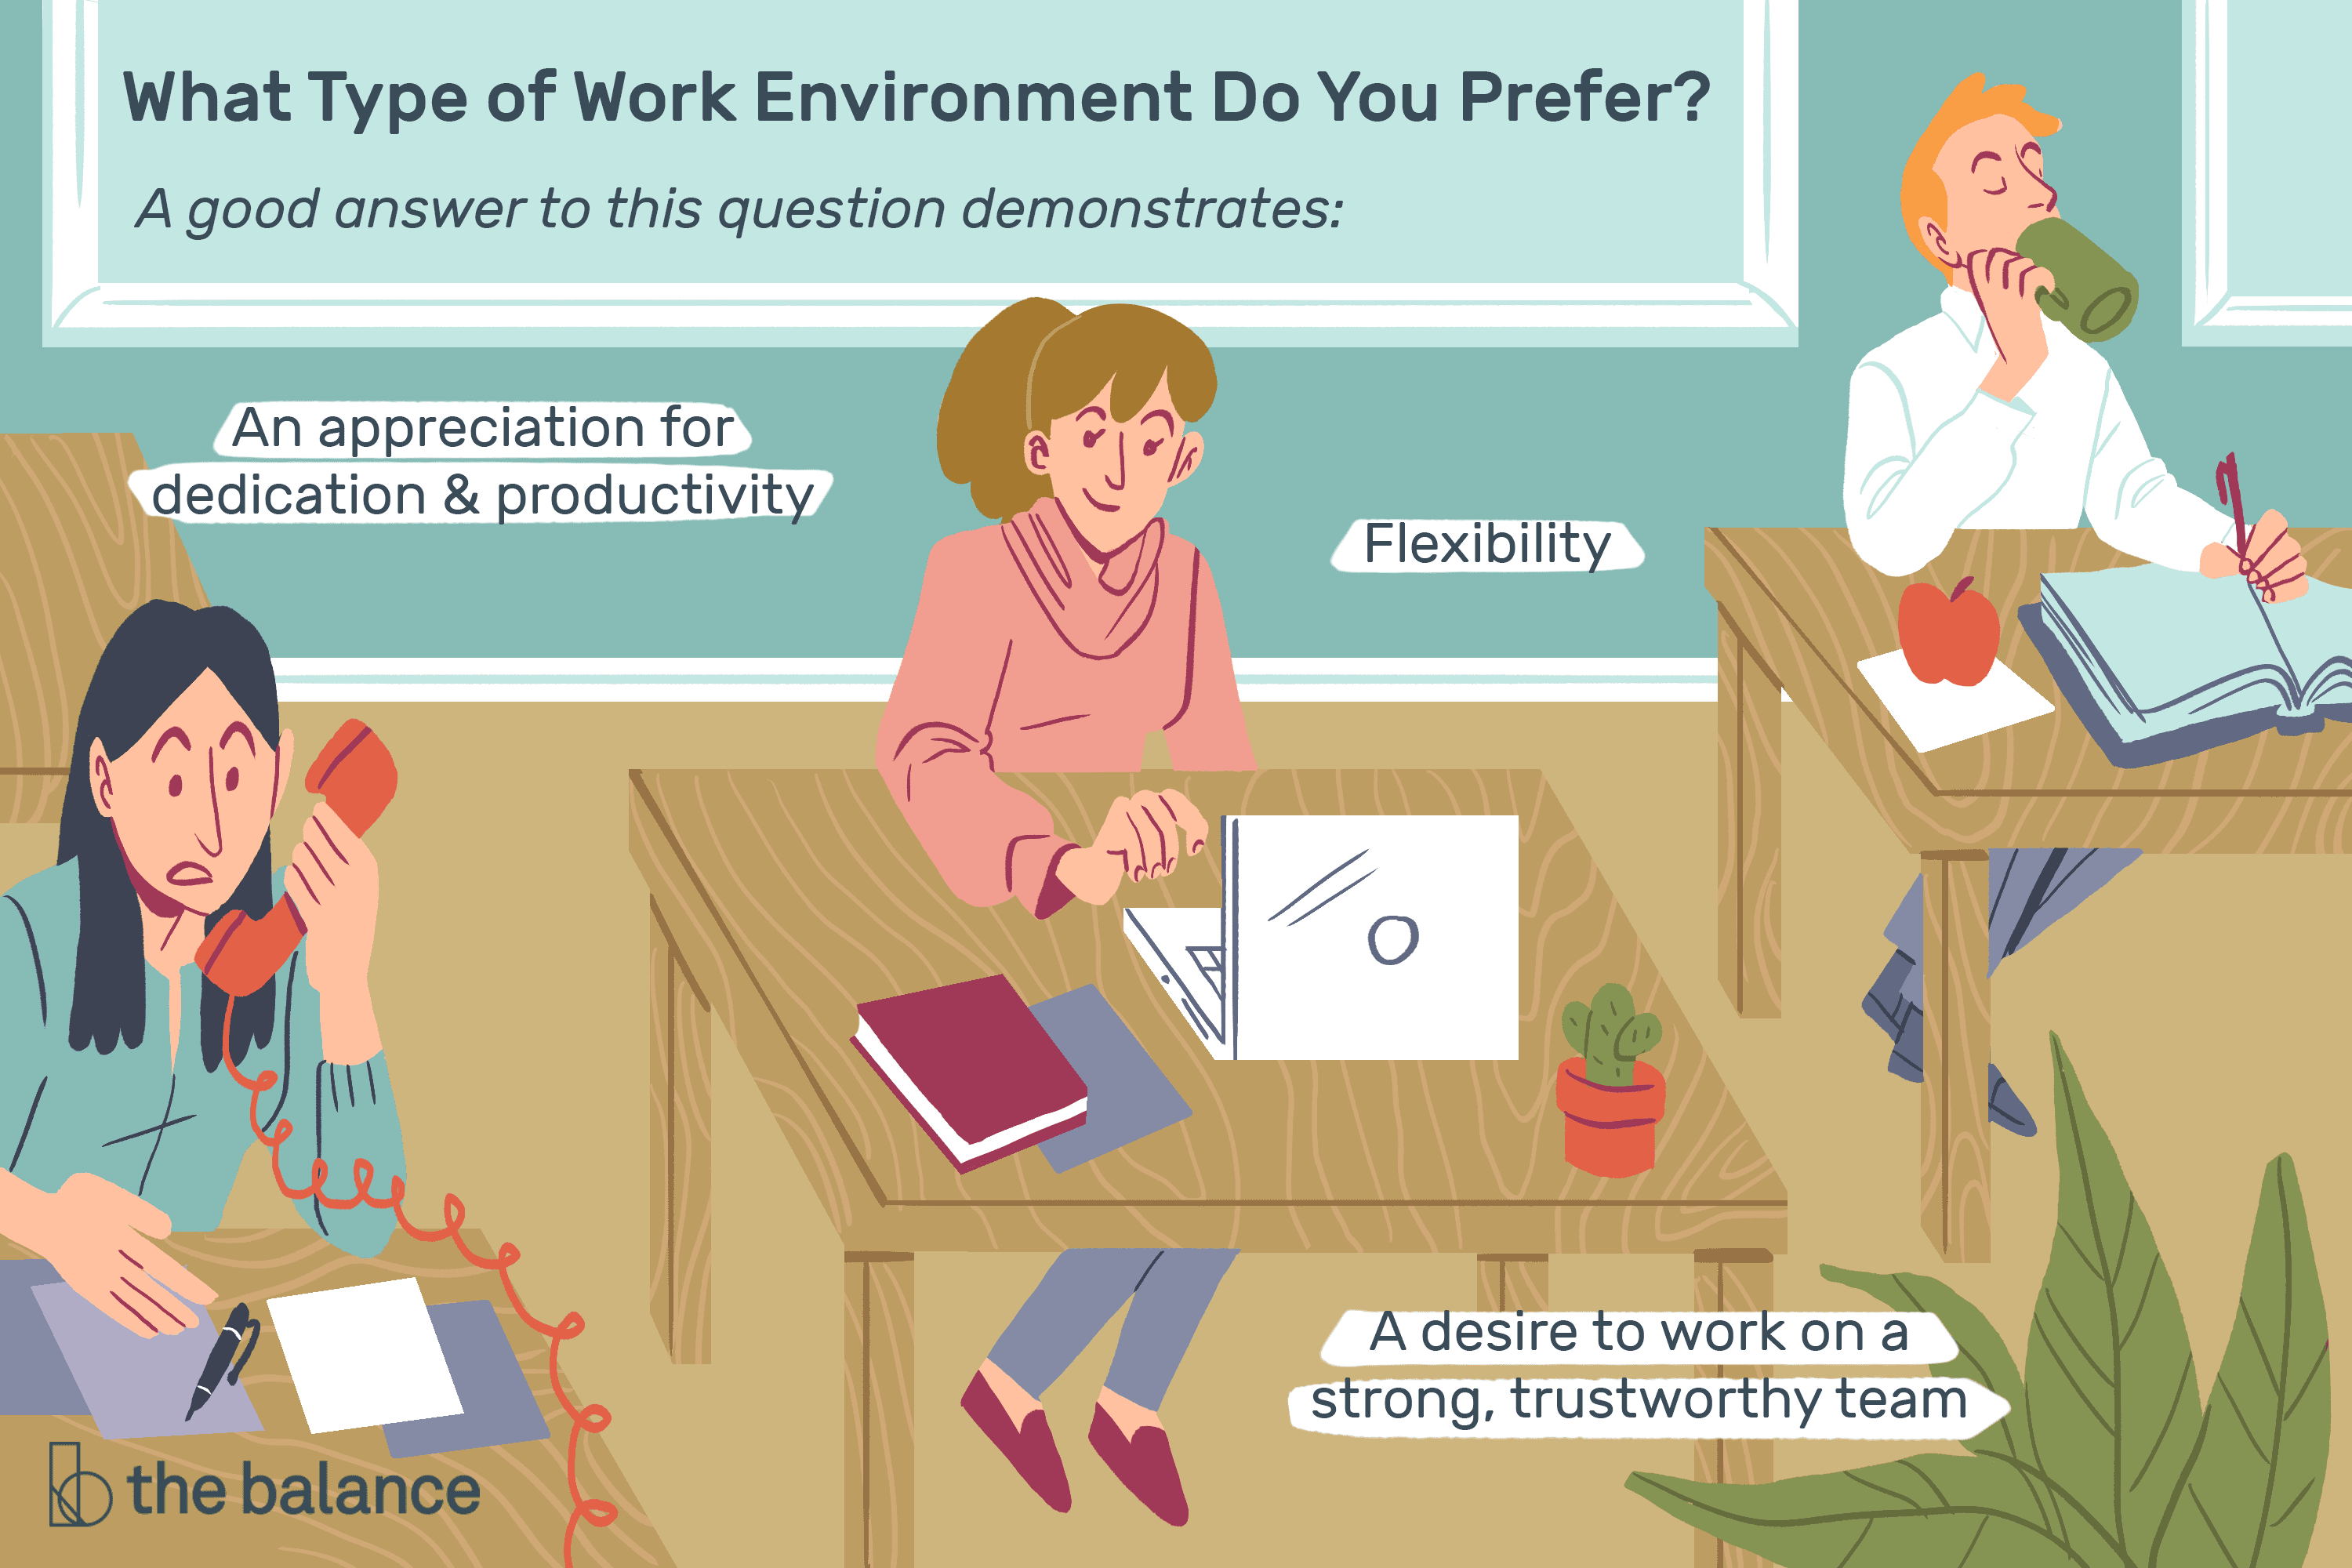 What Type of Work Environment Do You Prefer?